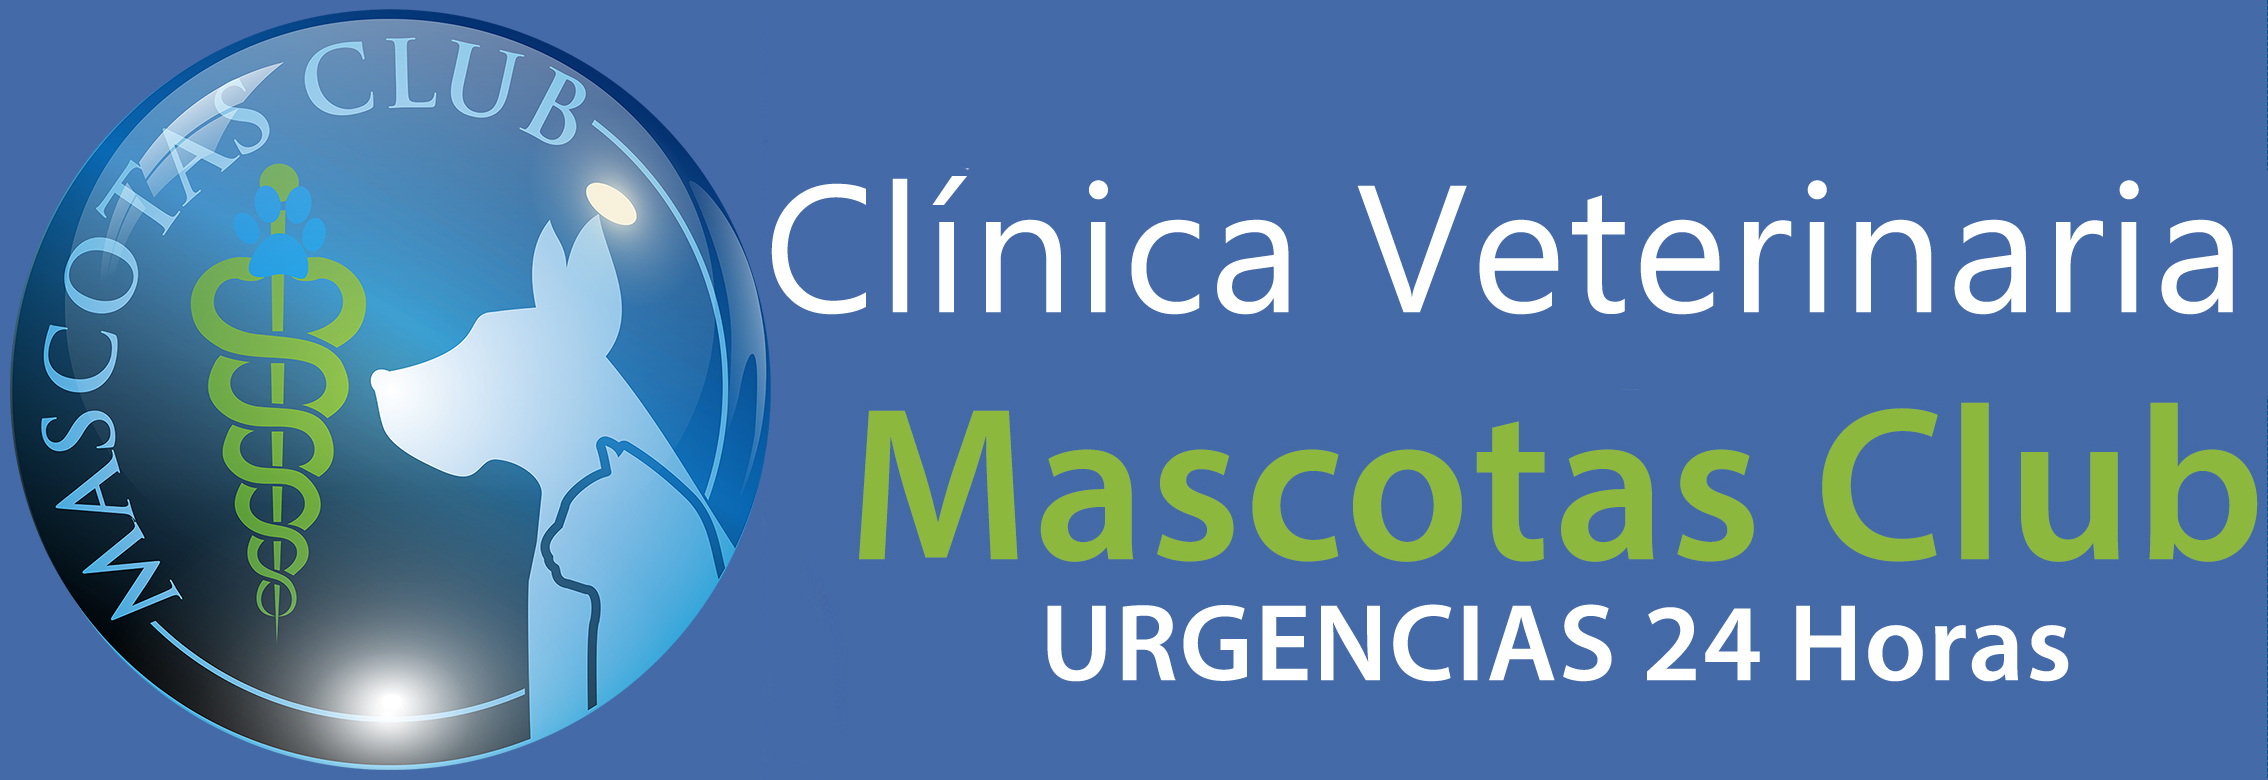 Clinica Veterinaria Mascotas club